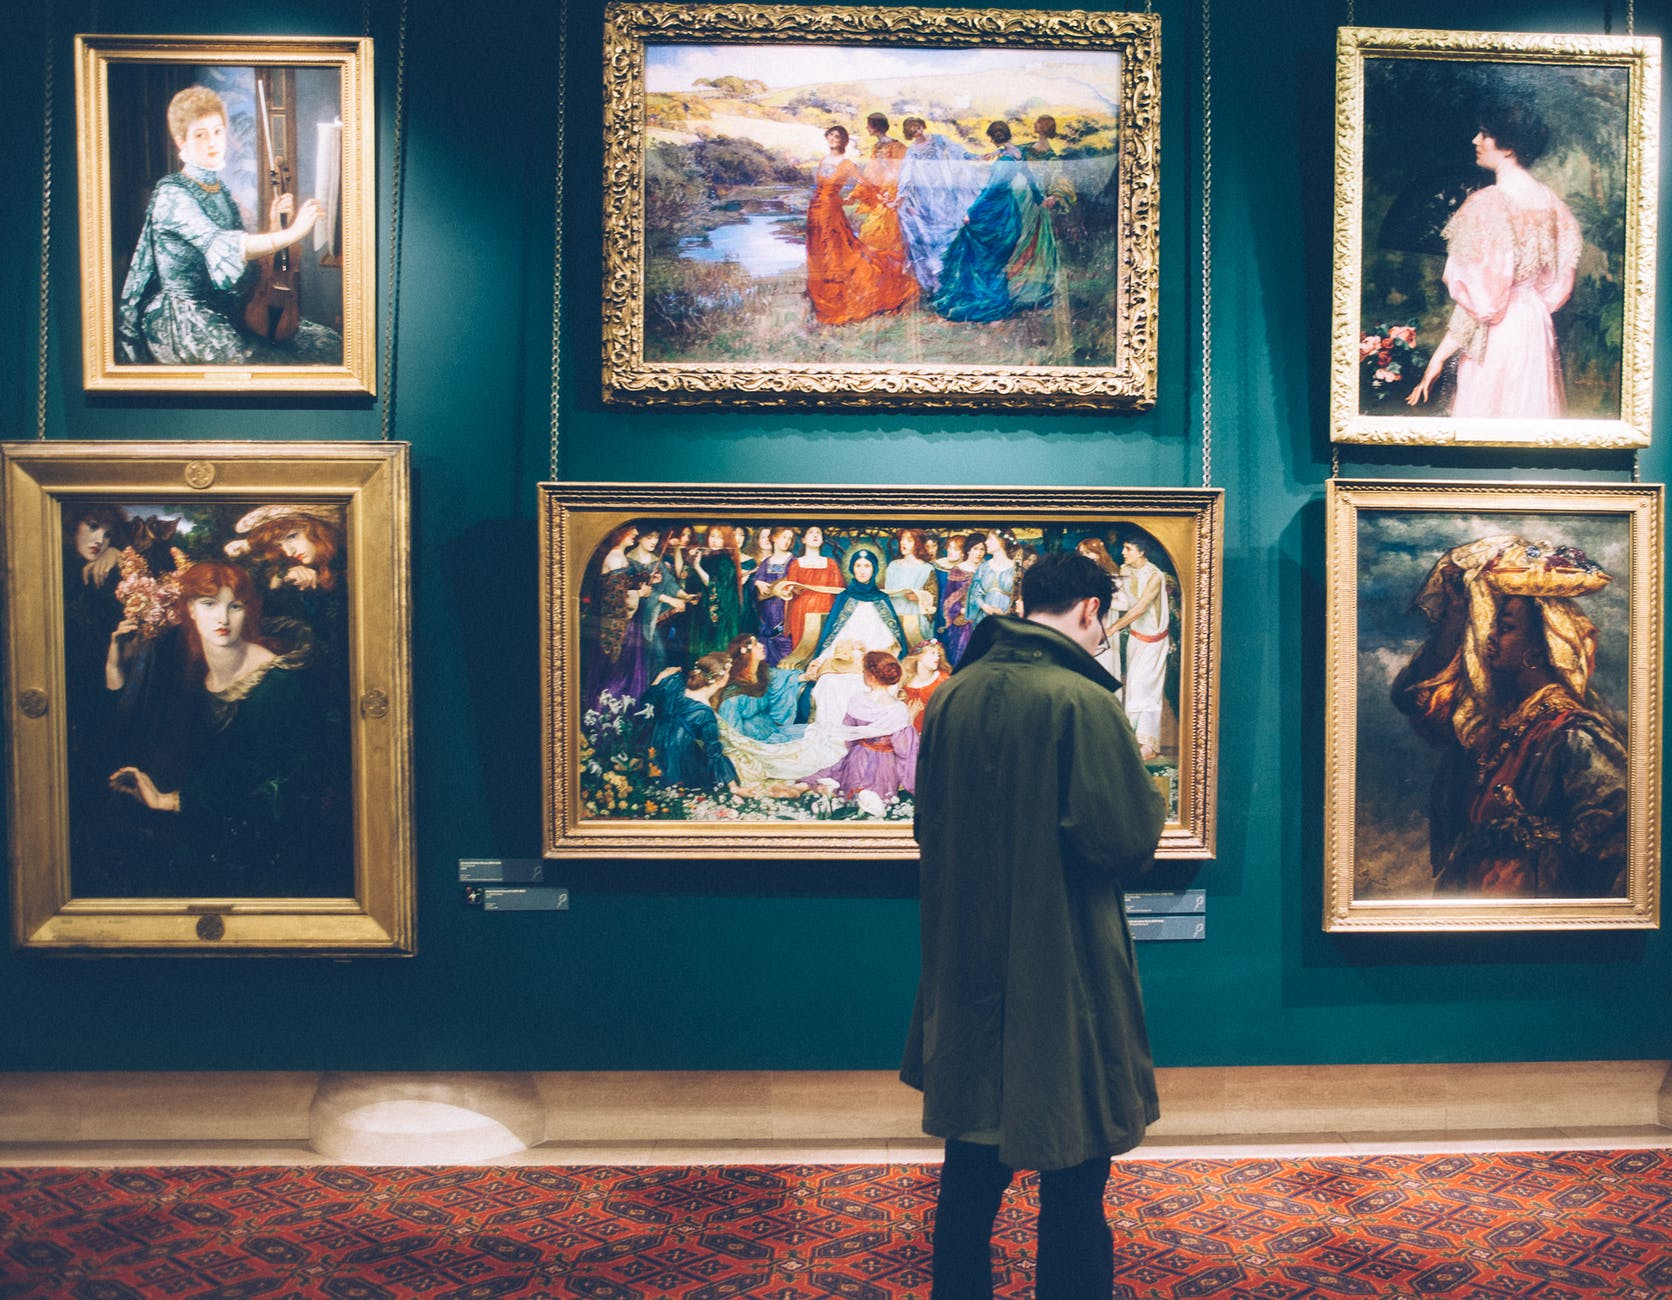 A man looking at historical art work